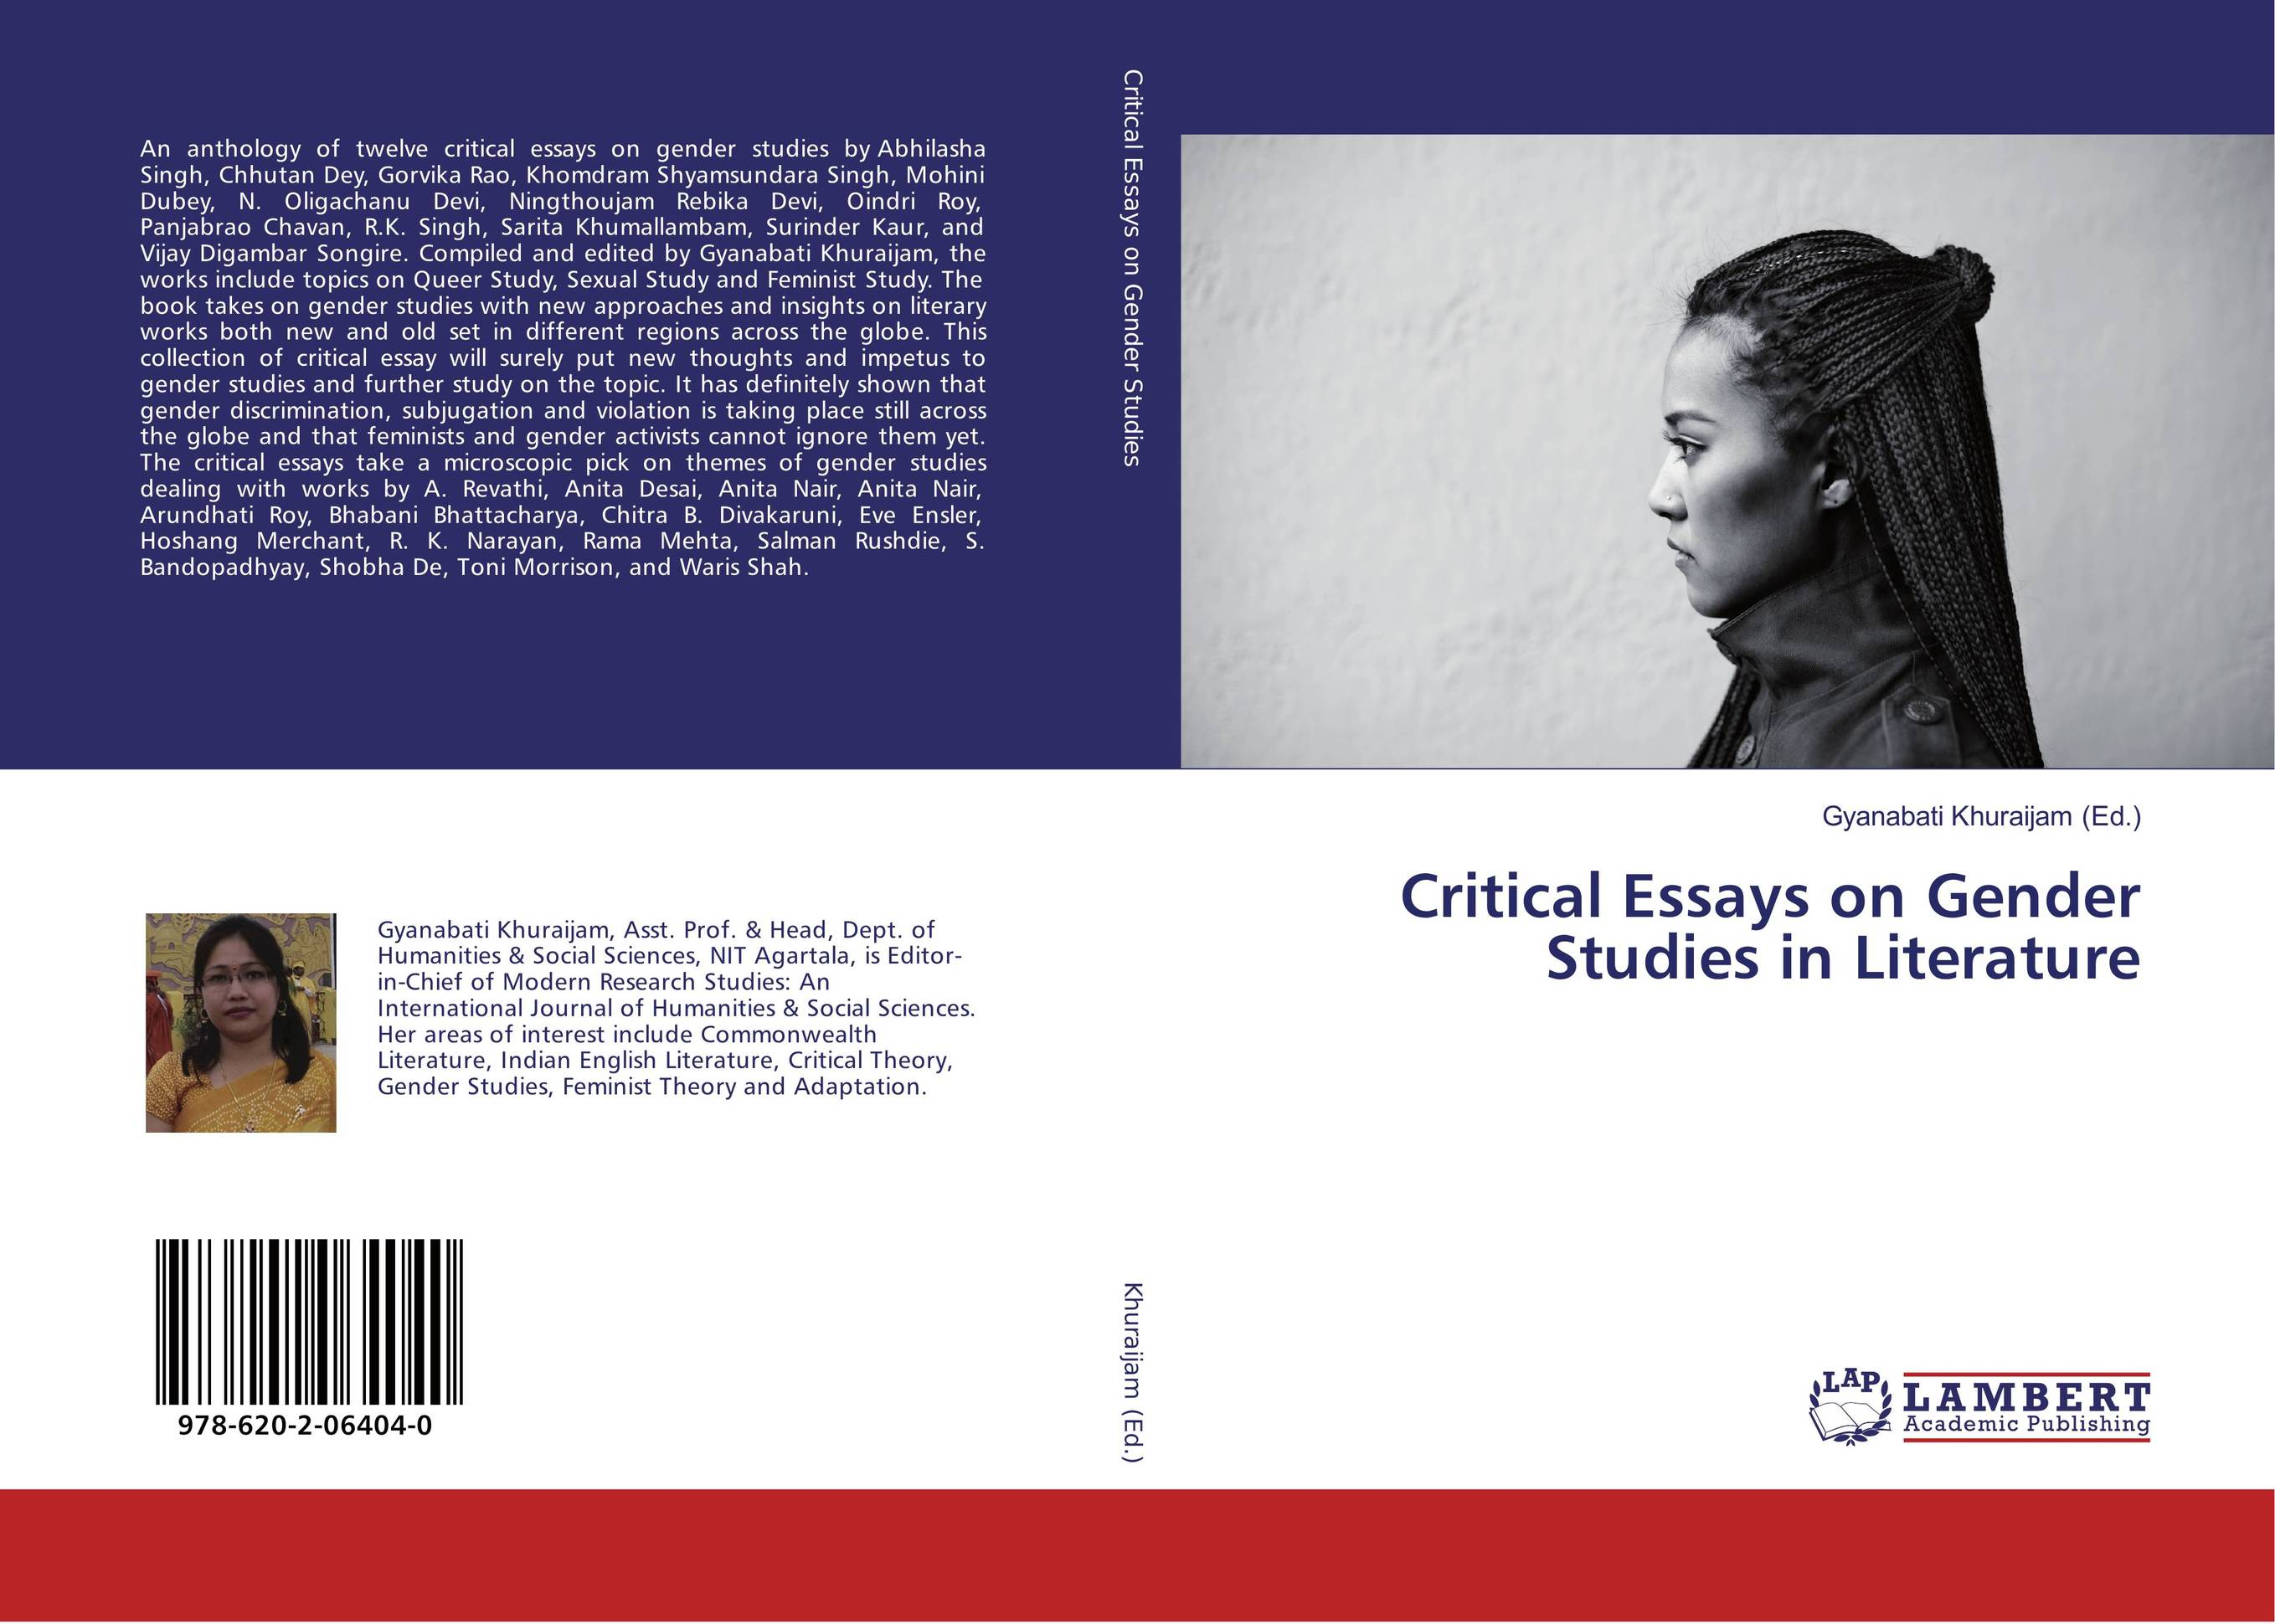 an essay on gender studies Gender studies coversheet course code 2011) this essay will show the ways that research on gender and media in africa would benefit from the nexus between academic scholarship and civil society in terms of contributing to a more equitable development agenda in africa (gadzekpo.